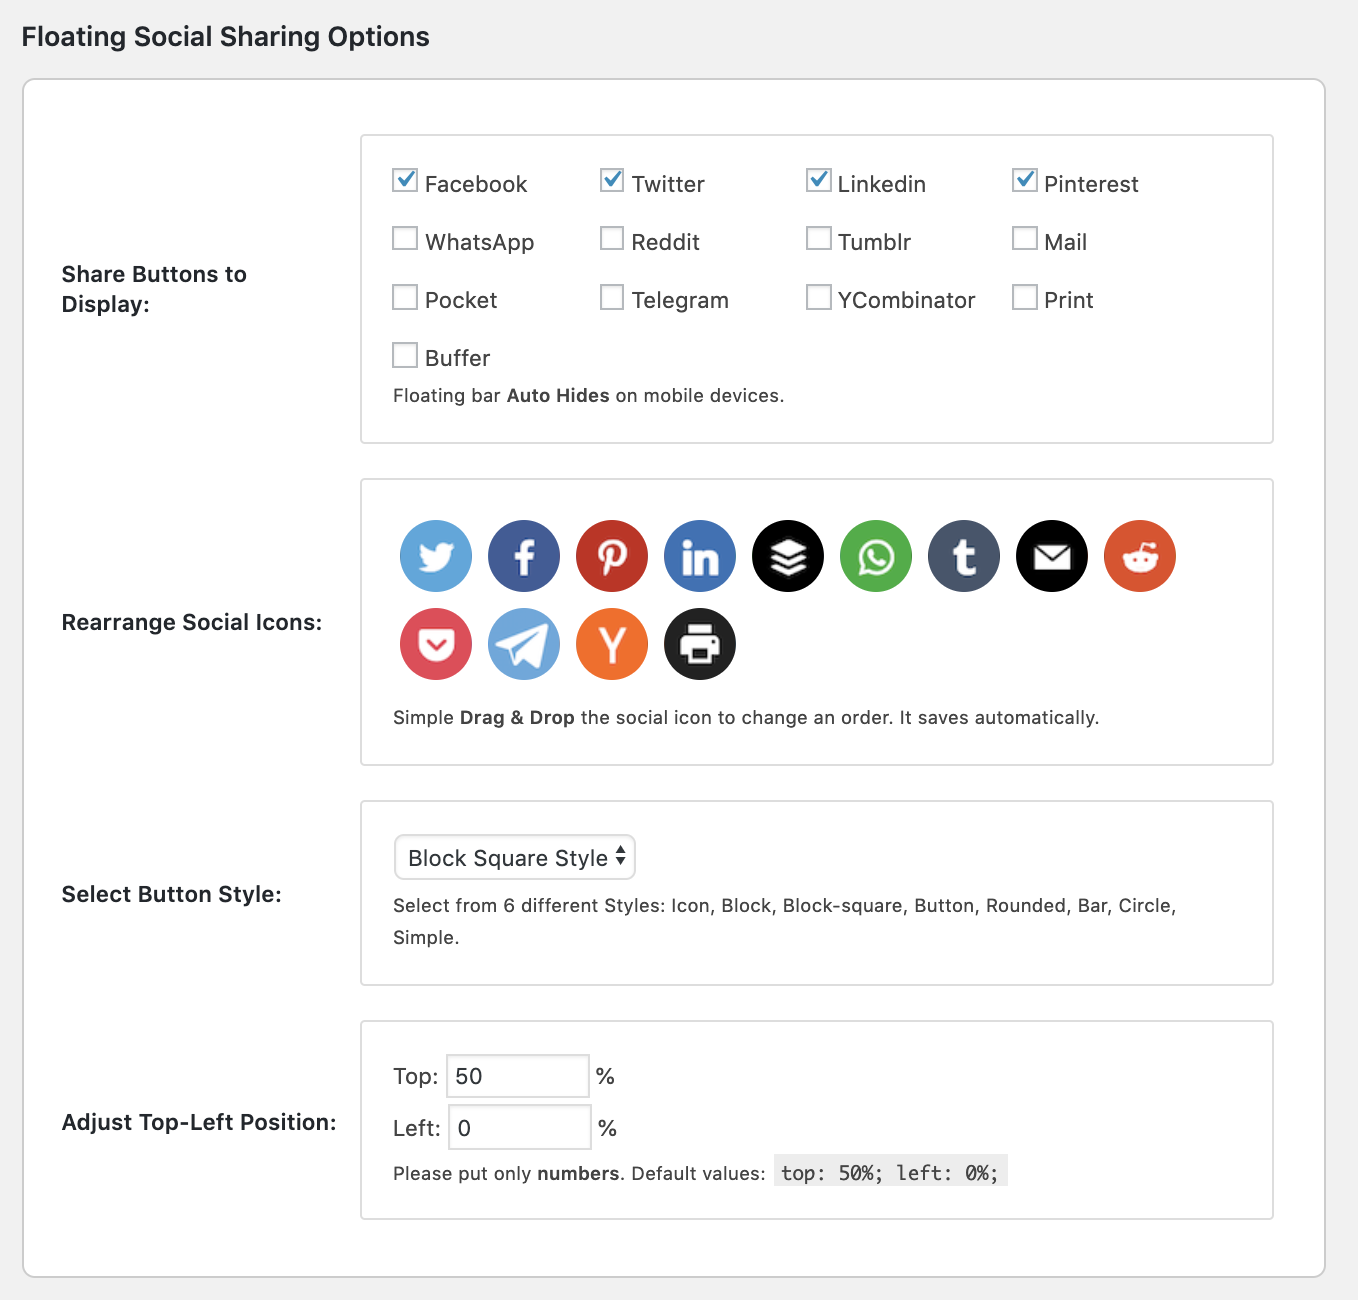 Crunchy Social - Floating Social Sharing Options